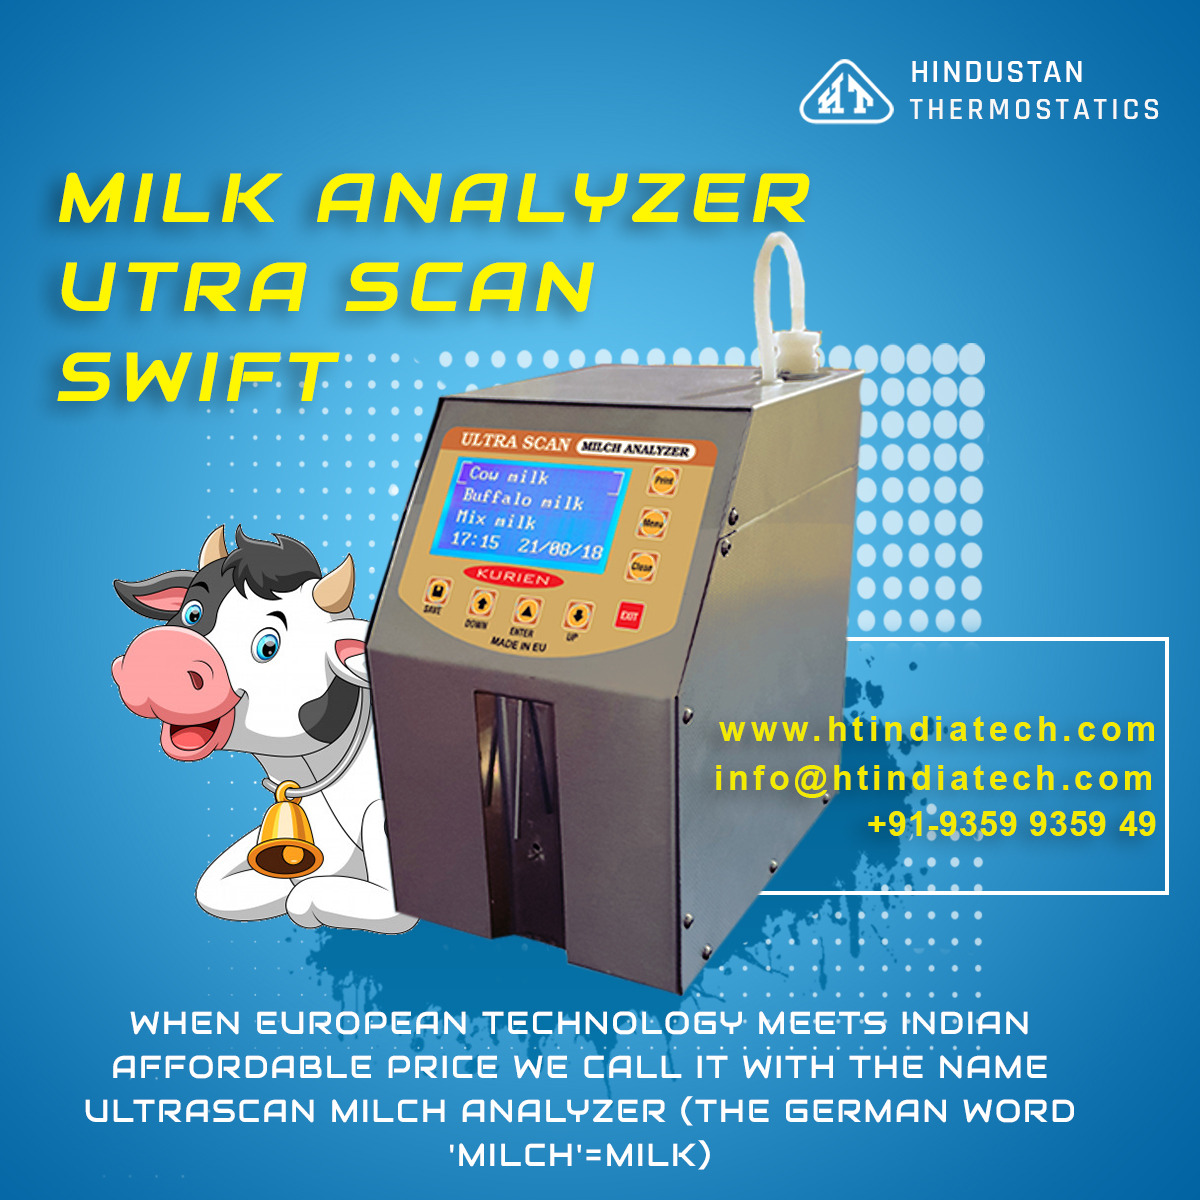 Buy Dairy Equipment For Dairy Industry in Best Price Range